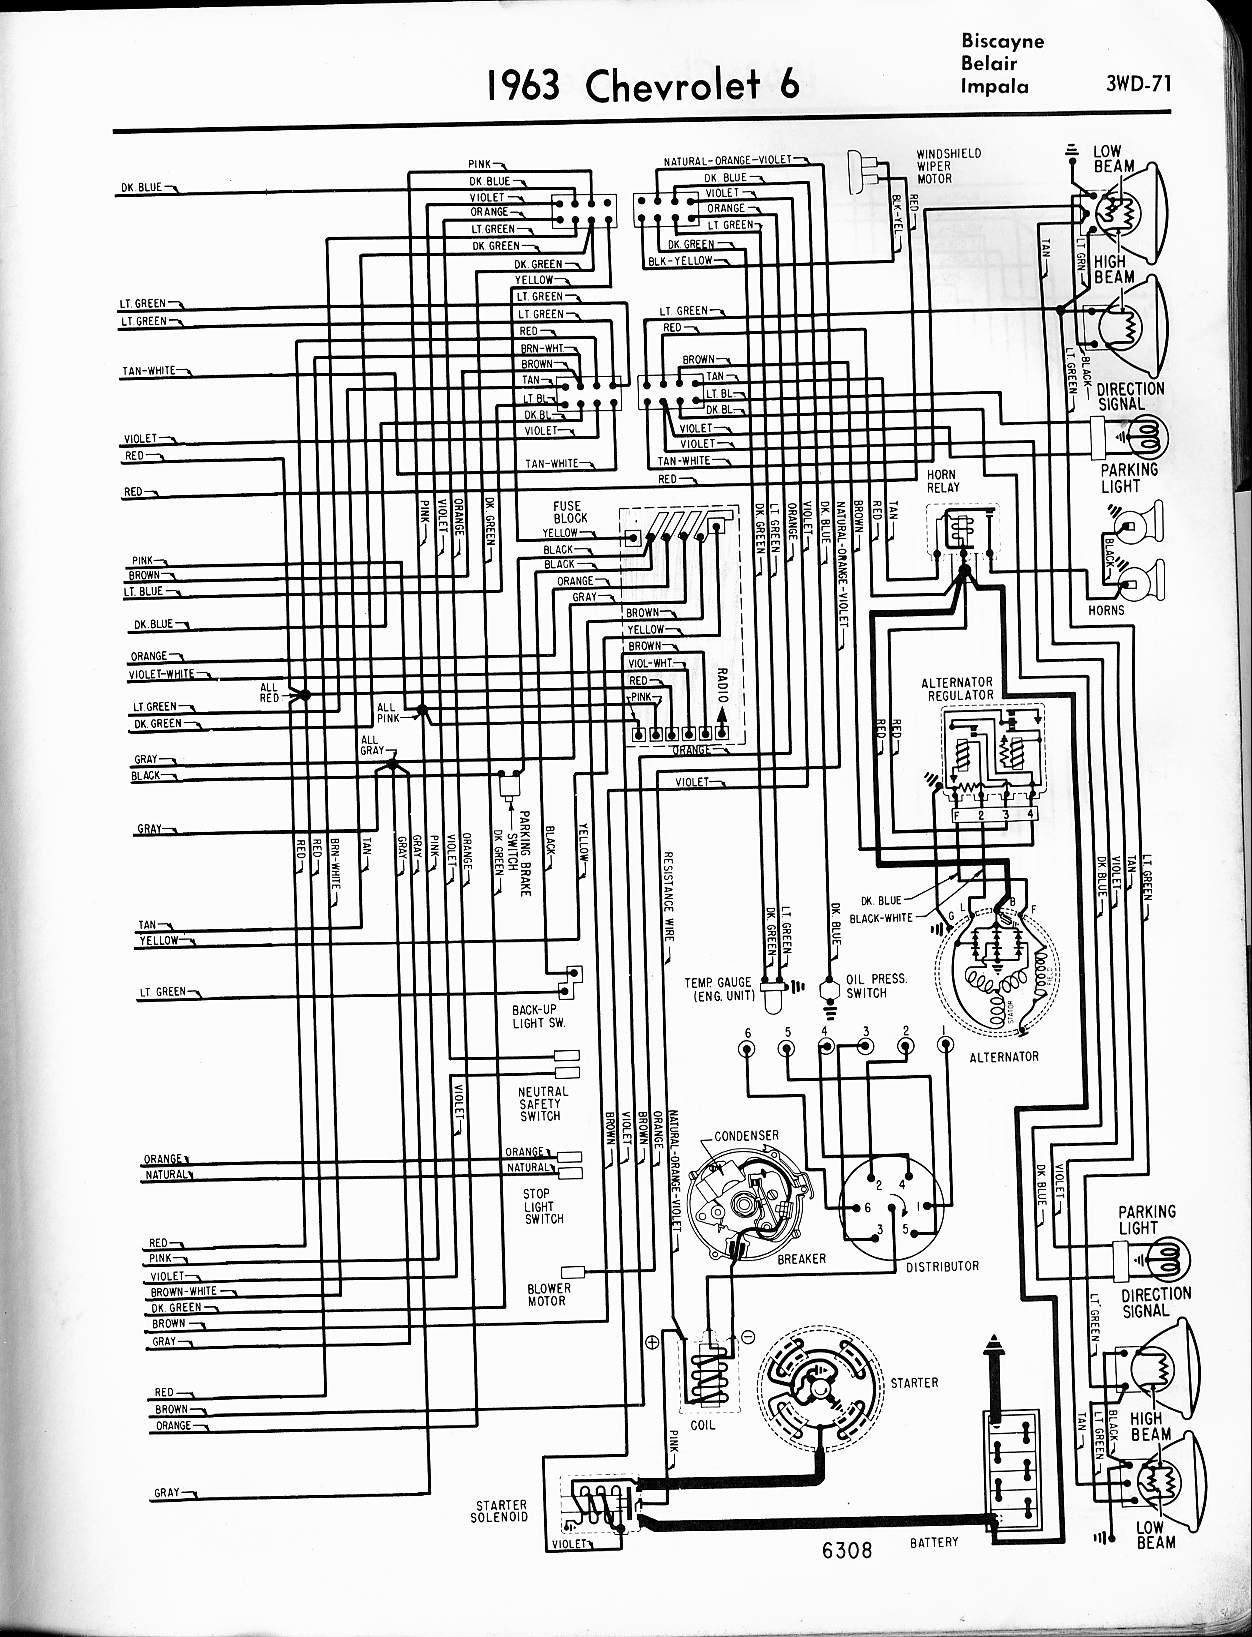 1965 impala engine diagram